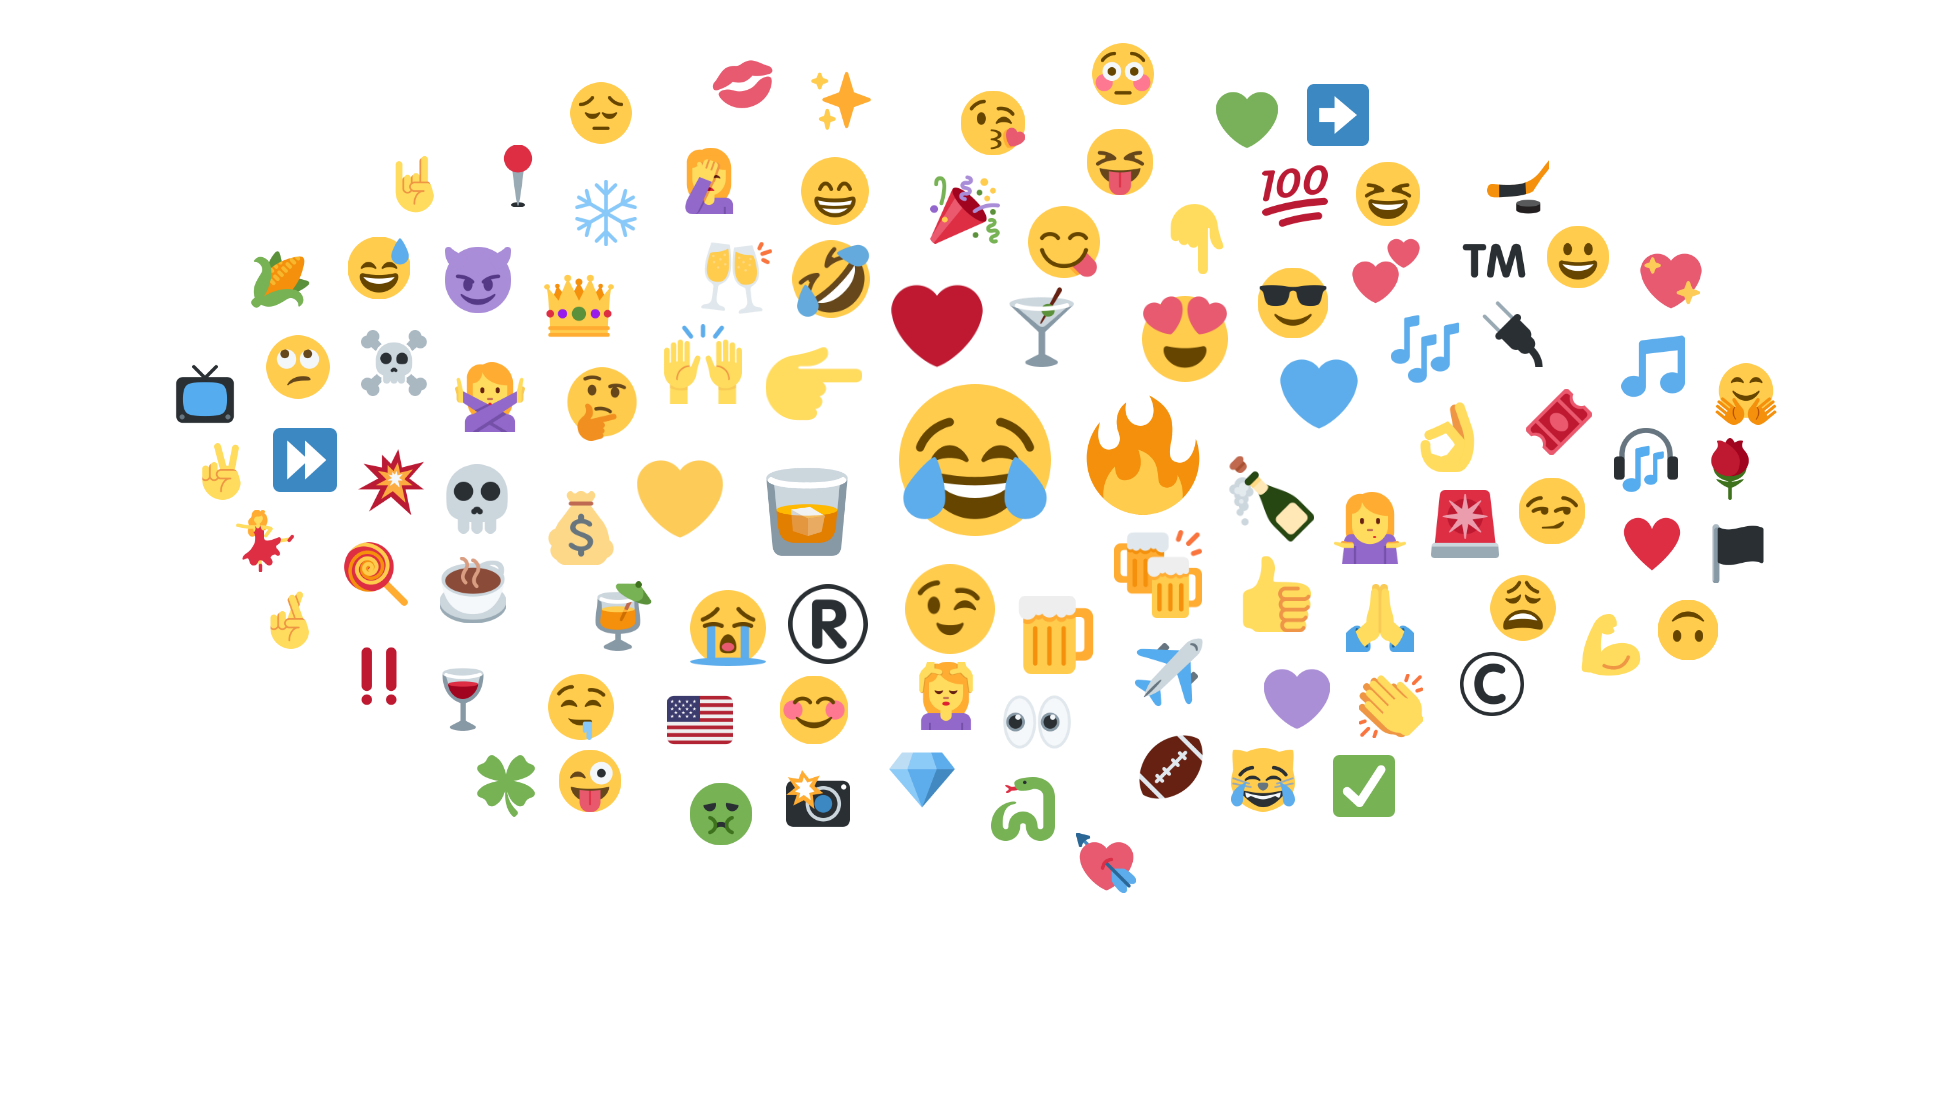 Most used emojis for  alcohol brands